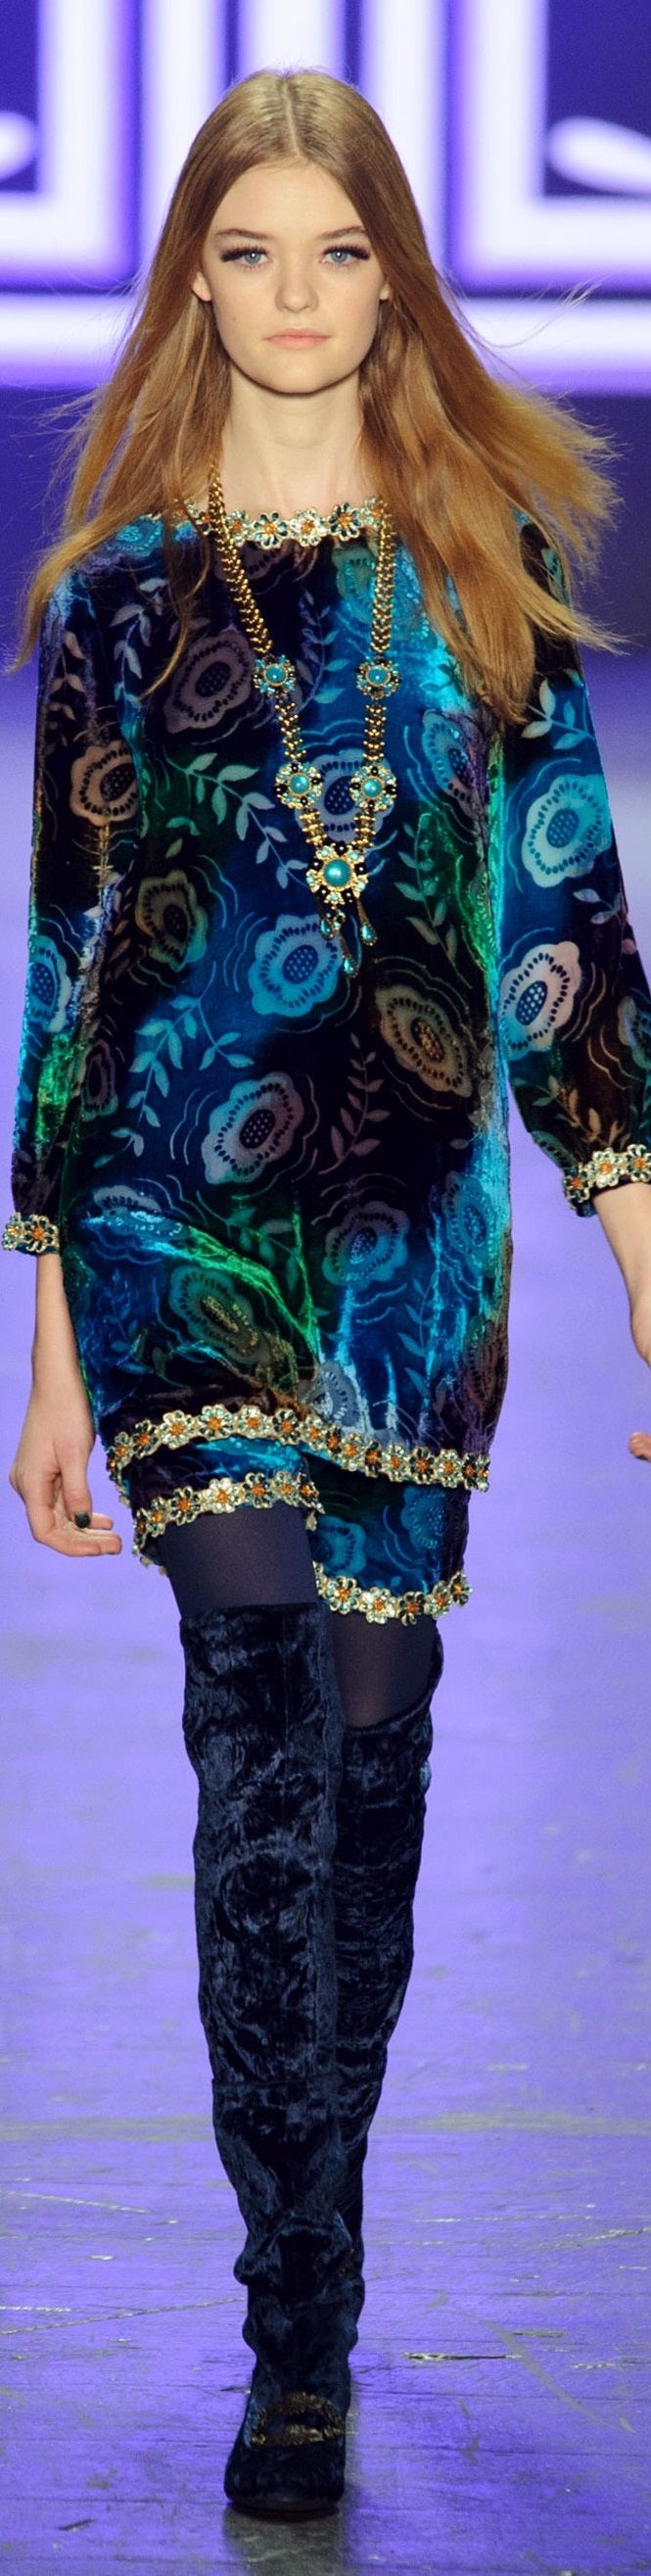 Anna Sui F-16 RTW: floral dress, knee boots.